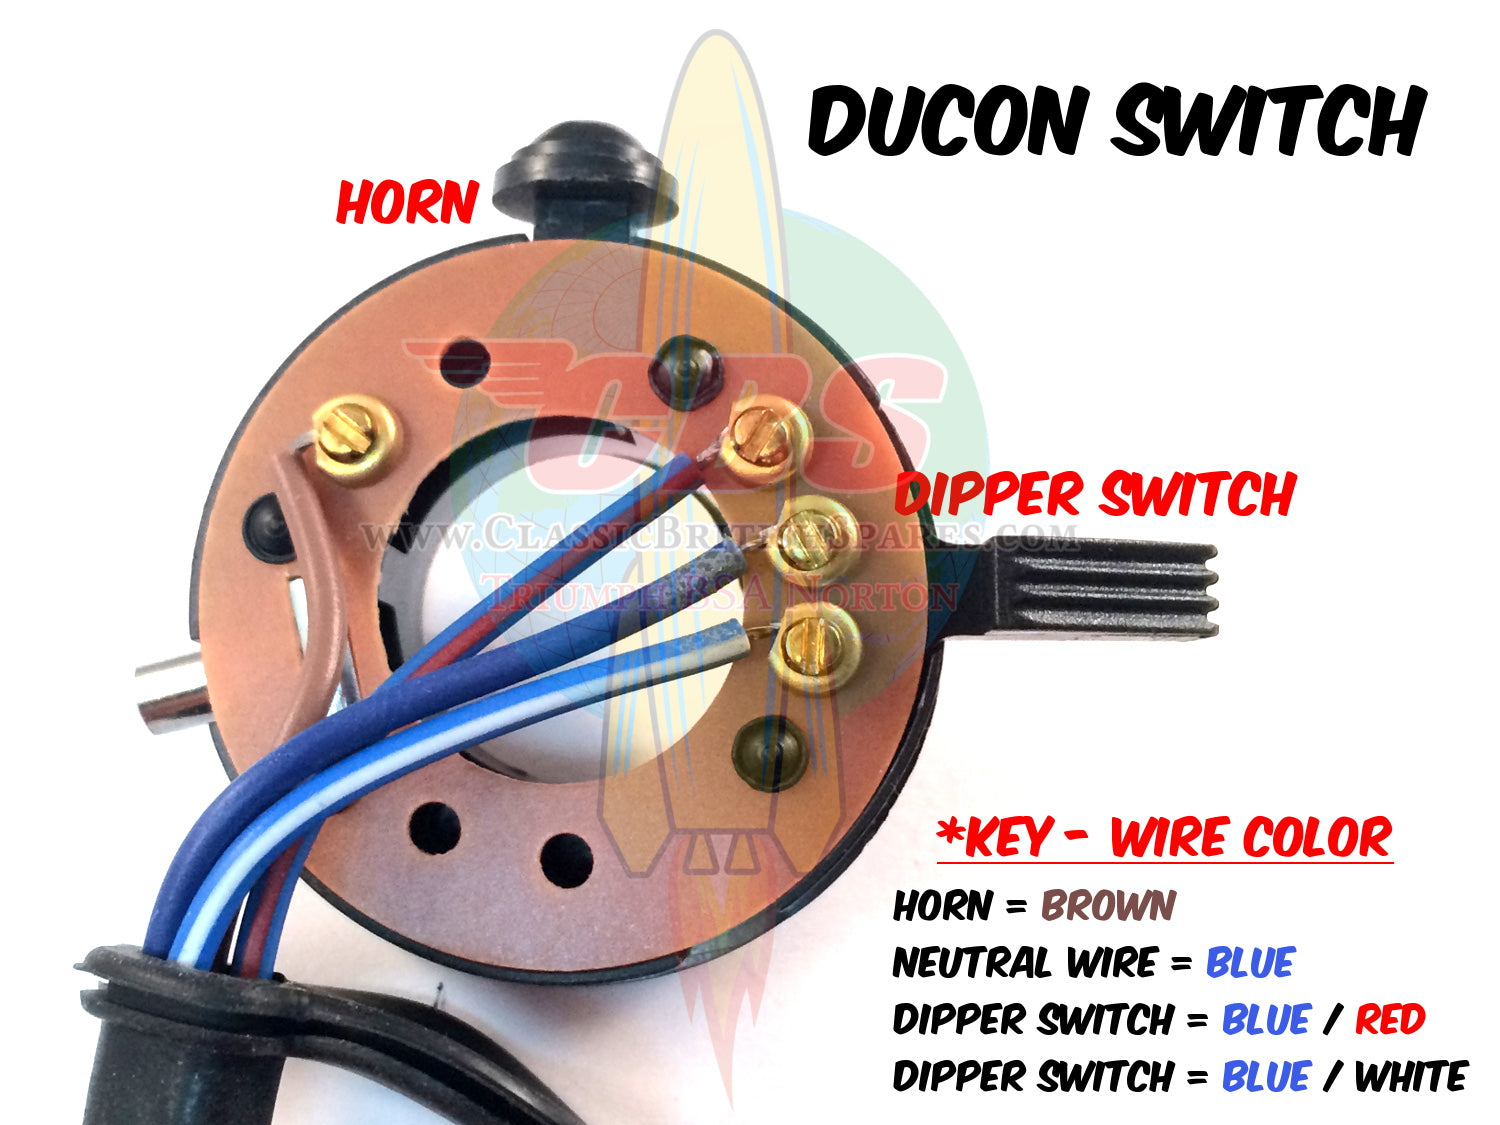 Wipac Ducon Wiring_8fc168b4 e9e9 415d 84e9 456d2c3e561a?13167179115134113755 technical files  at webbmarketing.co